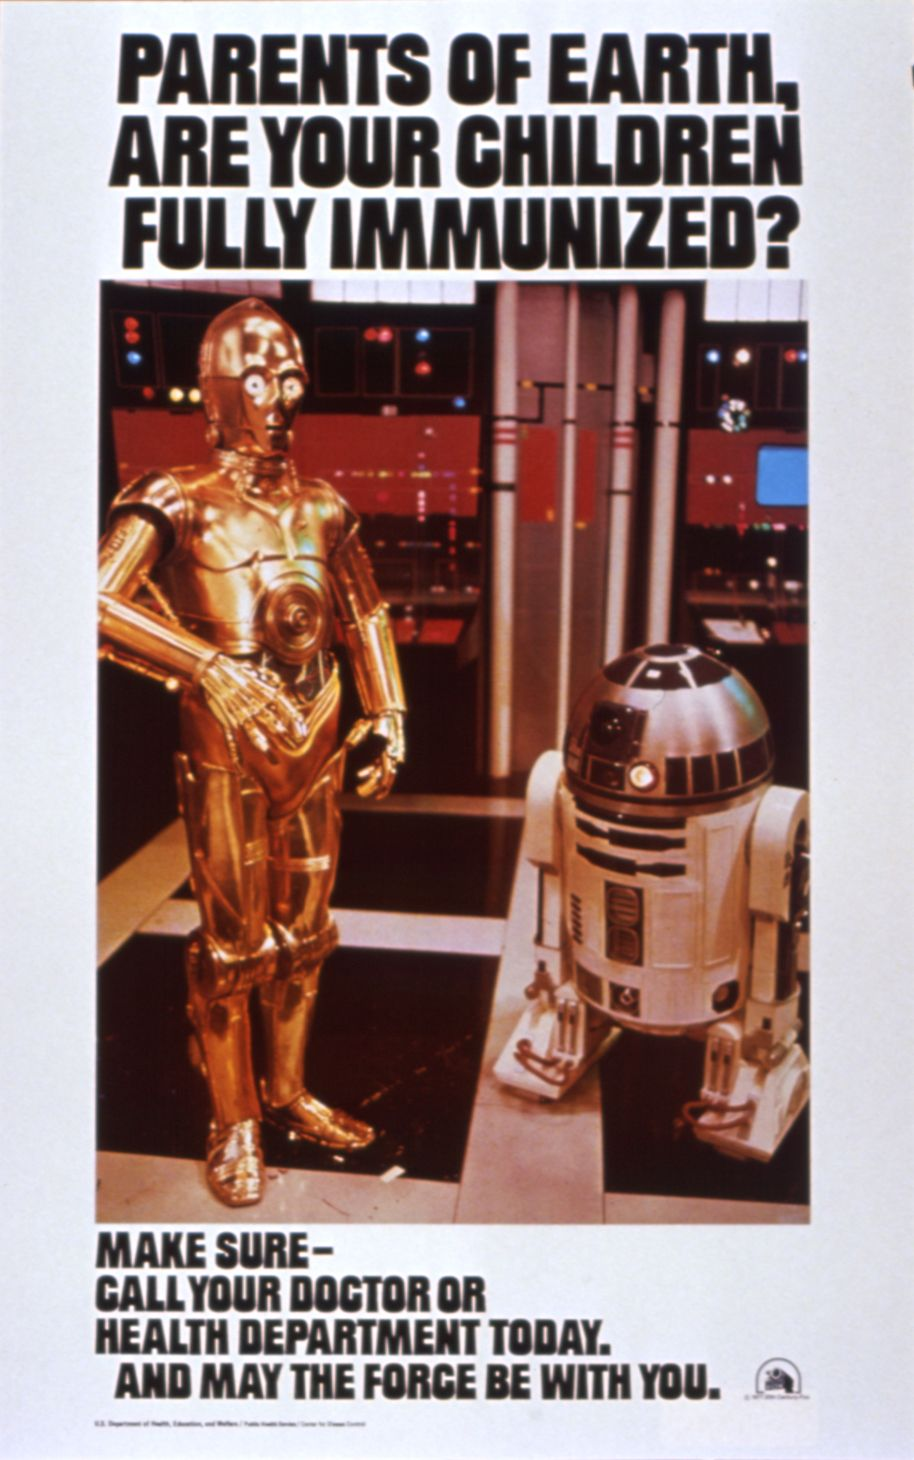 Star Wars immunization poster from 1977 from the Department of Health, Education, and Welfare and the Centers for Disease Control